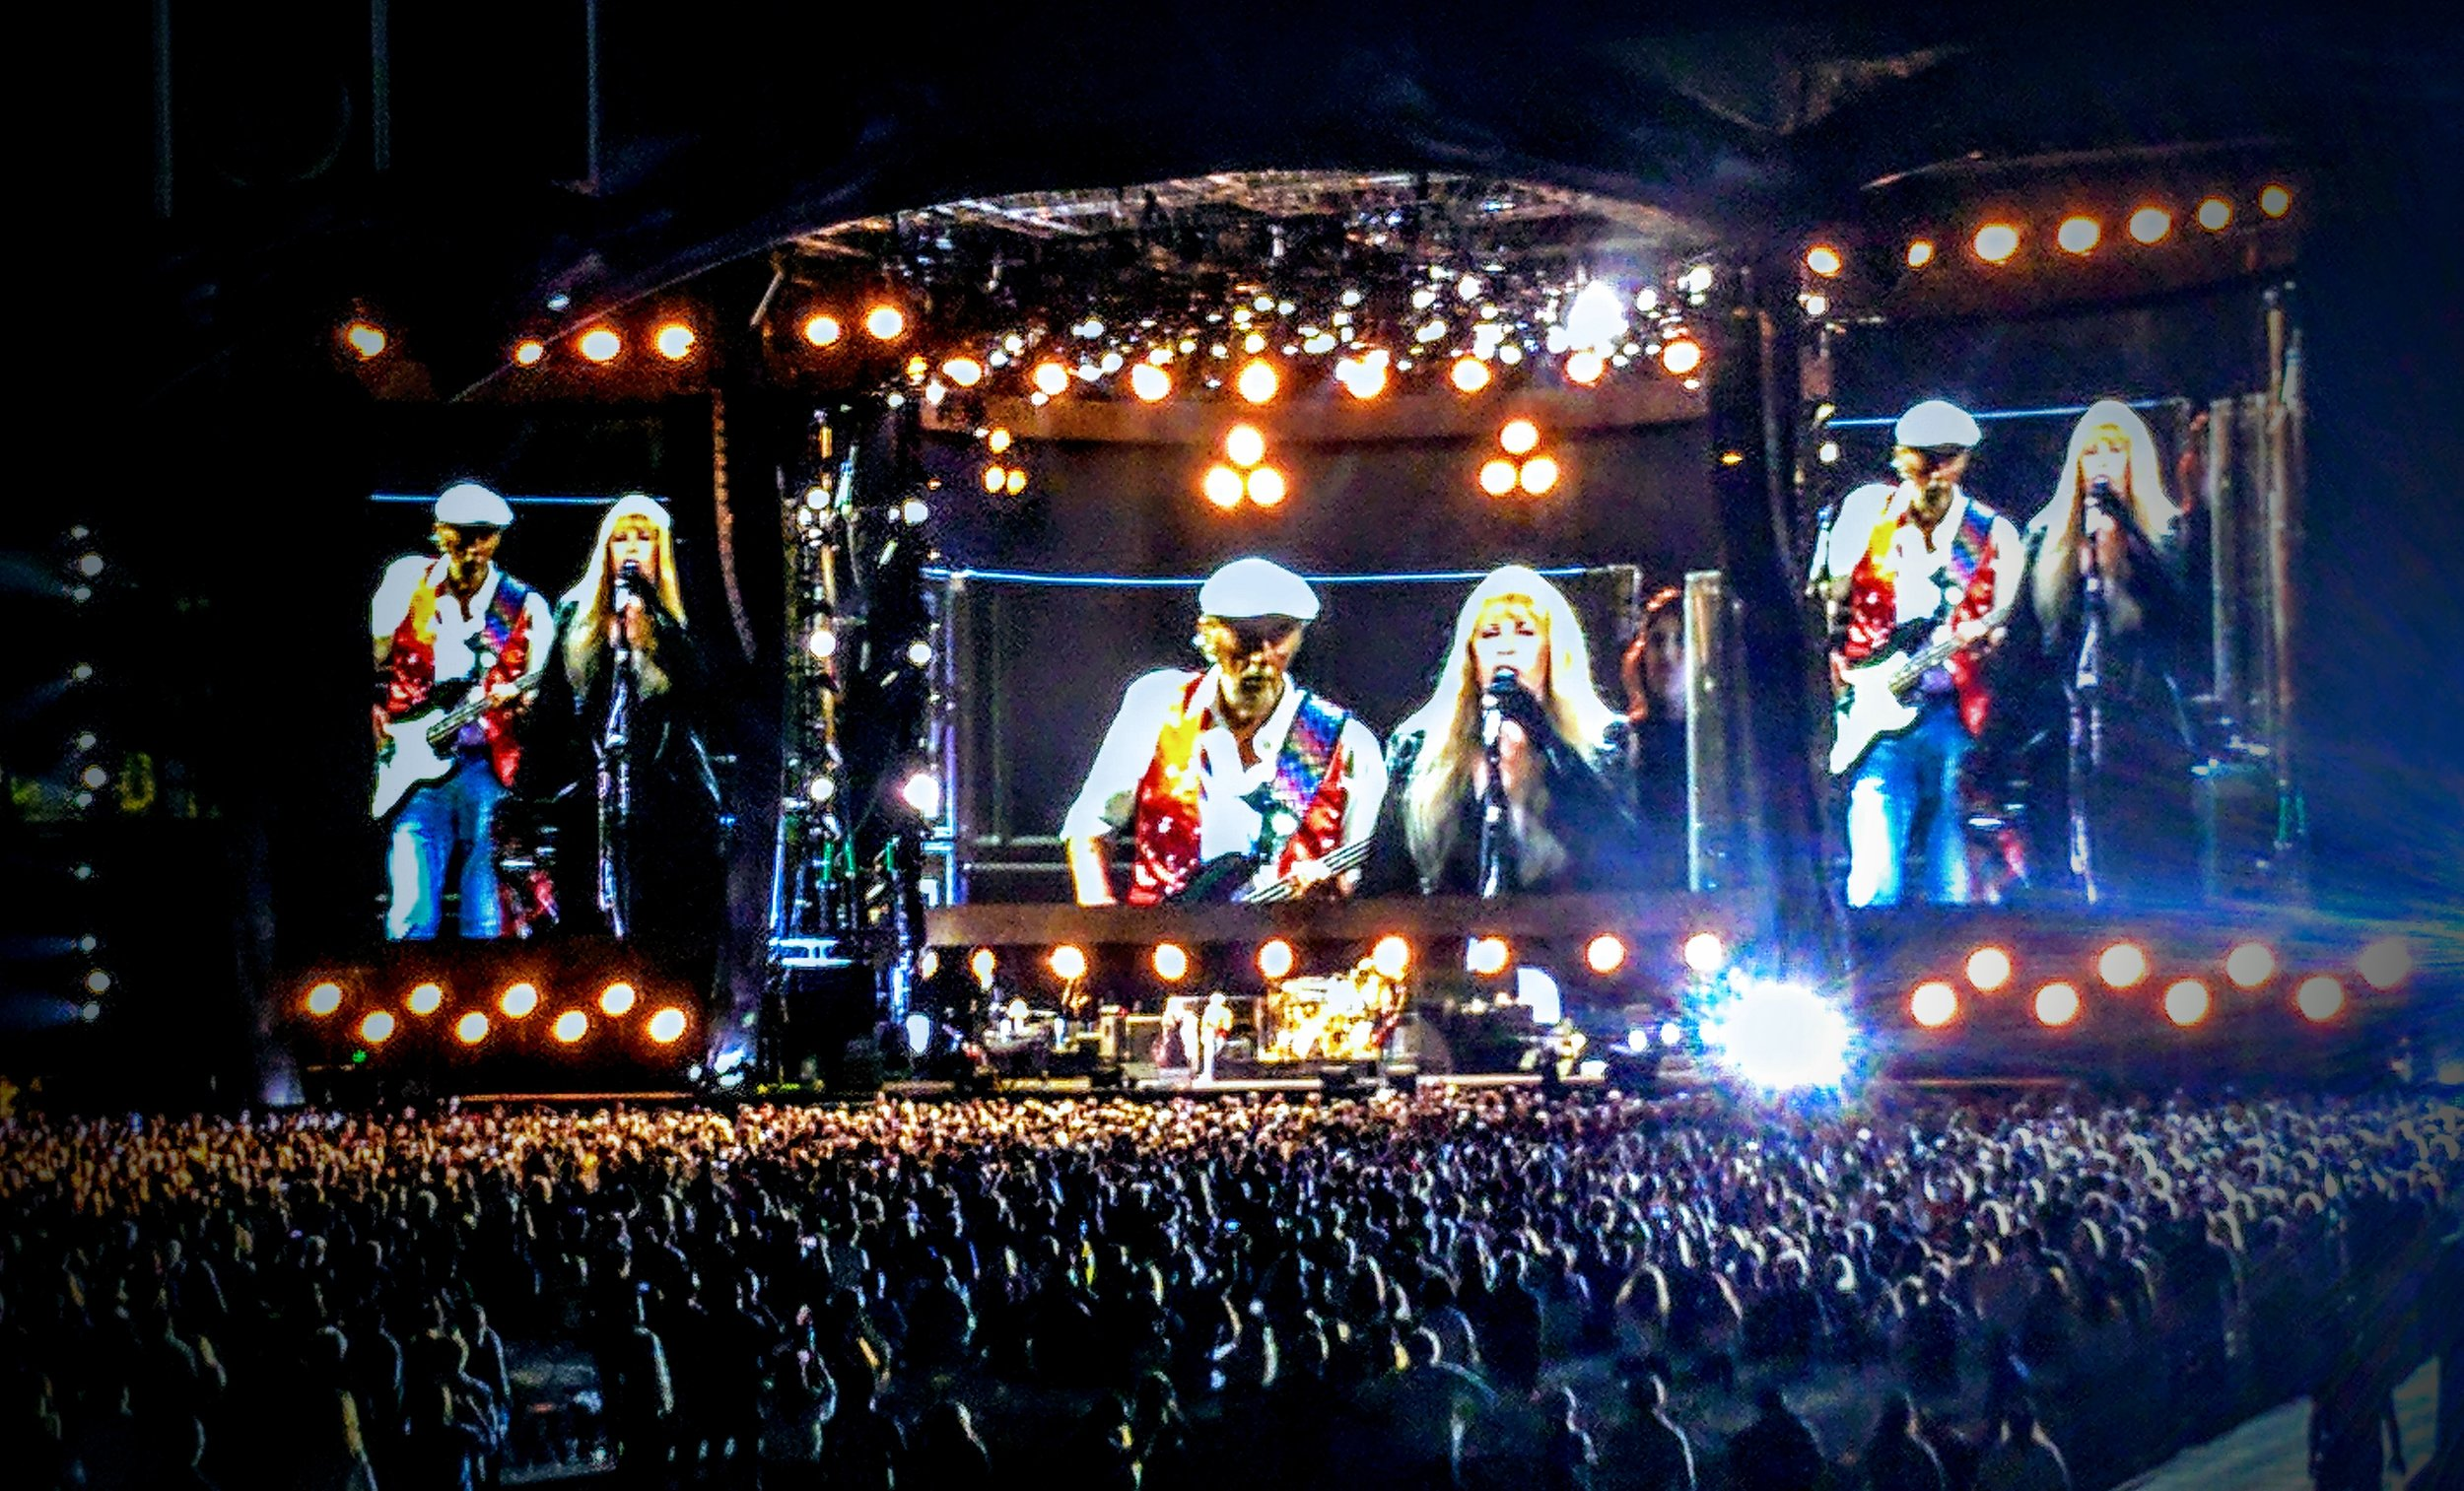 John McVie, Stevie Nicks, and 50,000 of our closest friends.